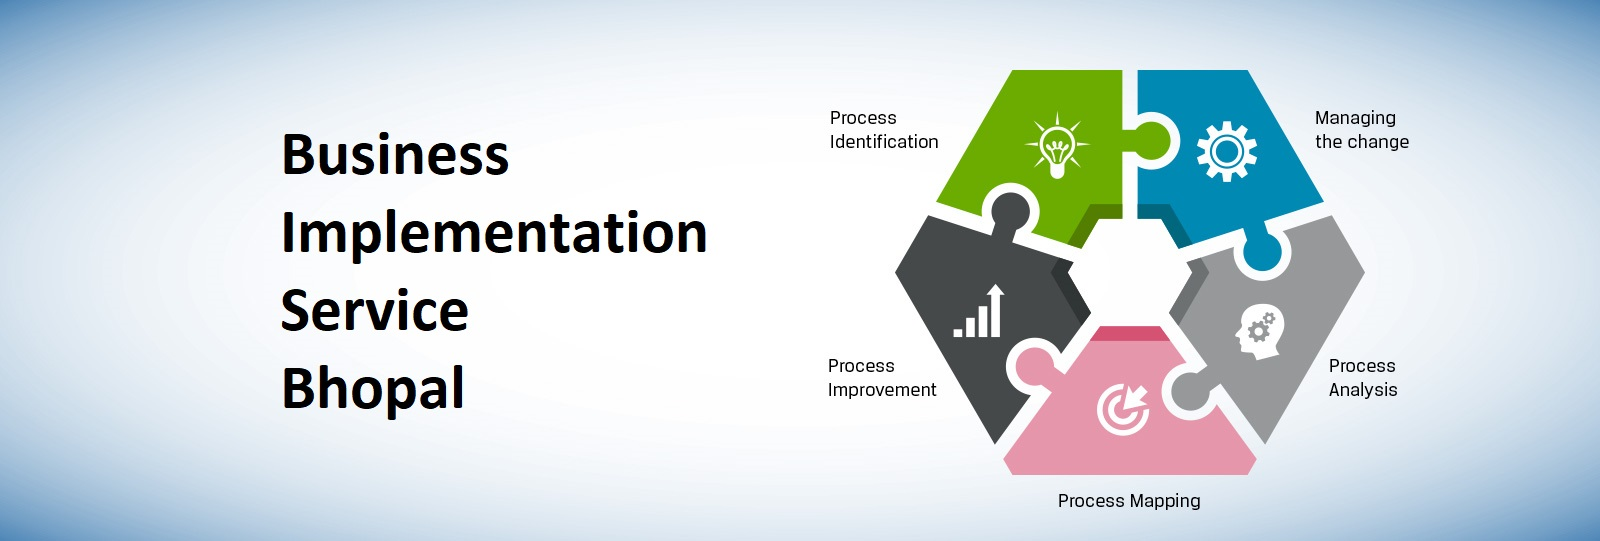 Business Implementation service bhopal